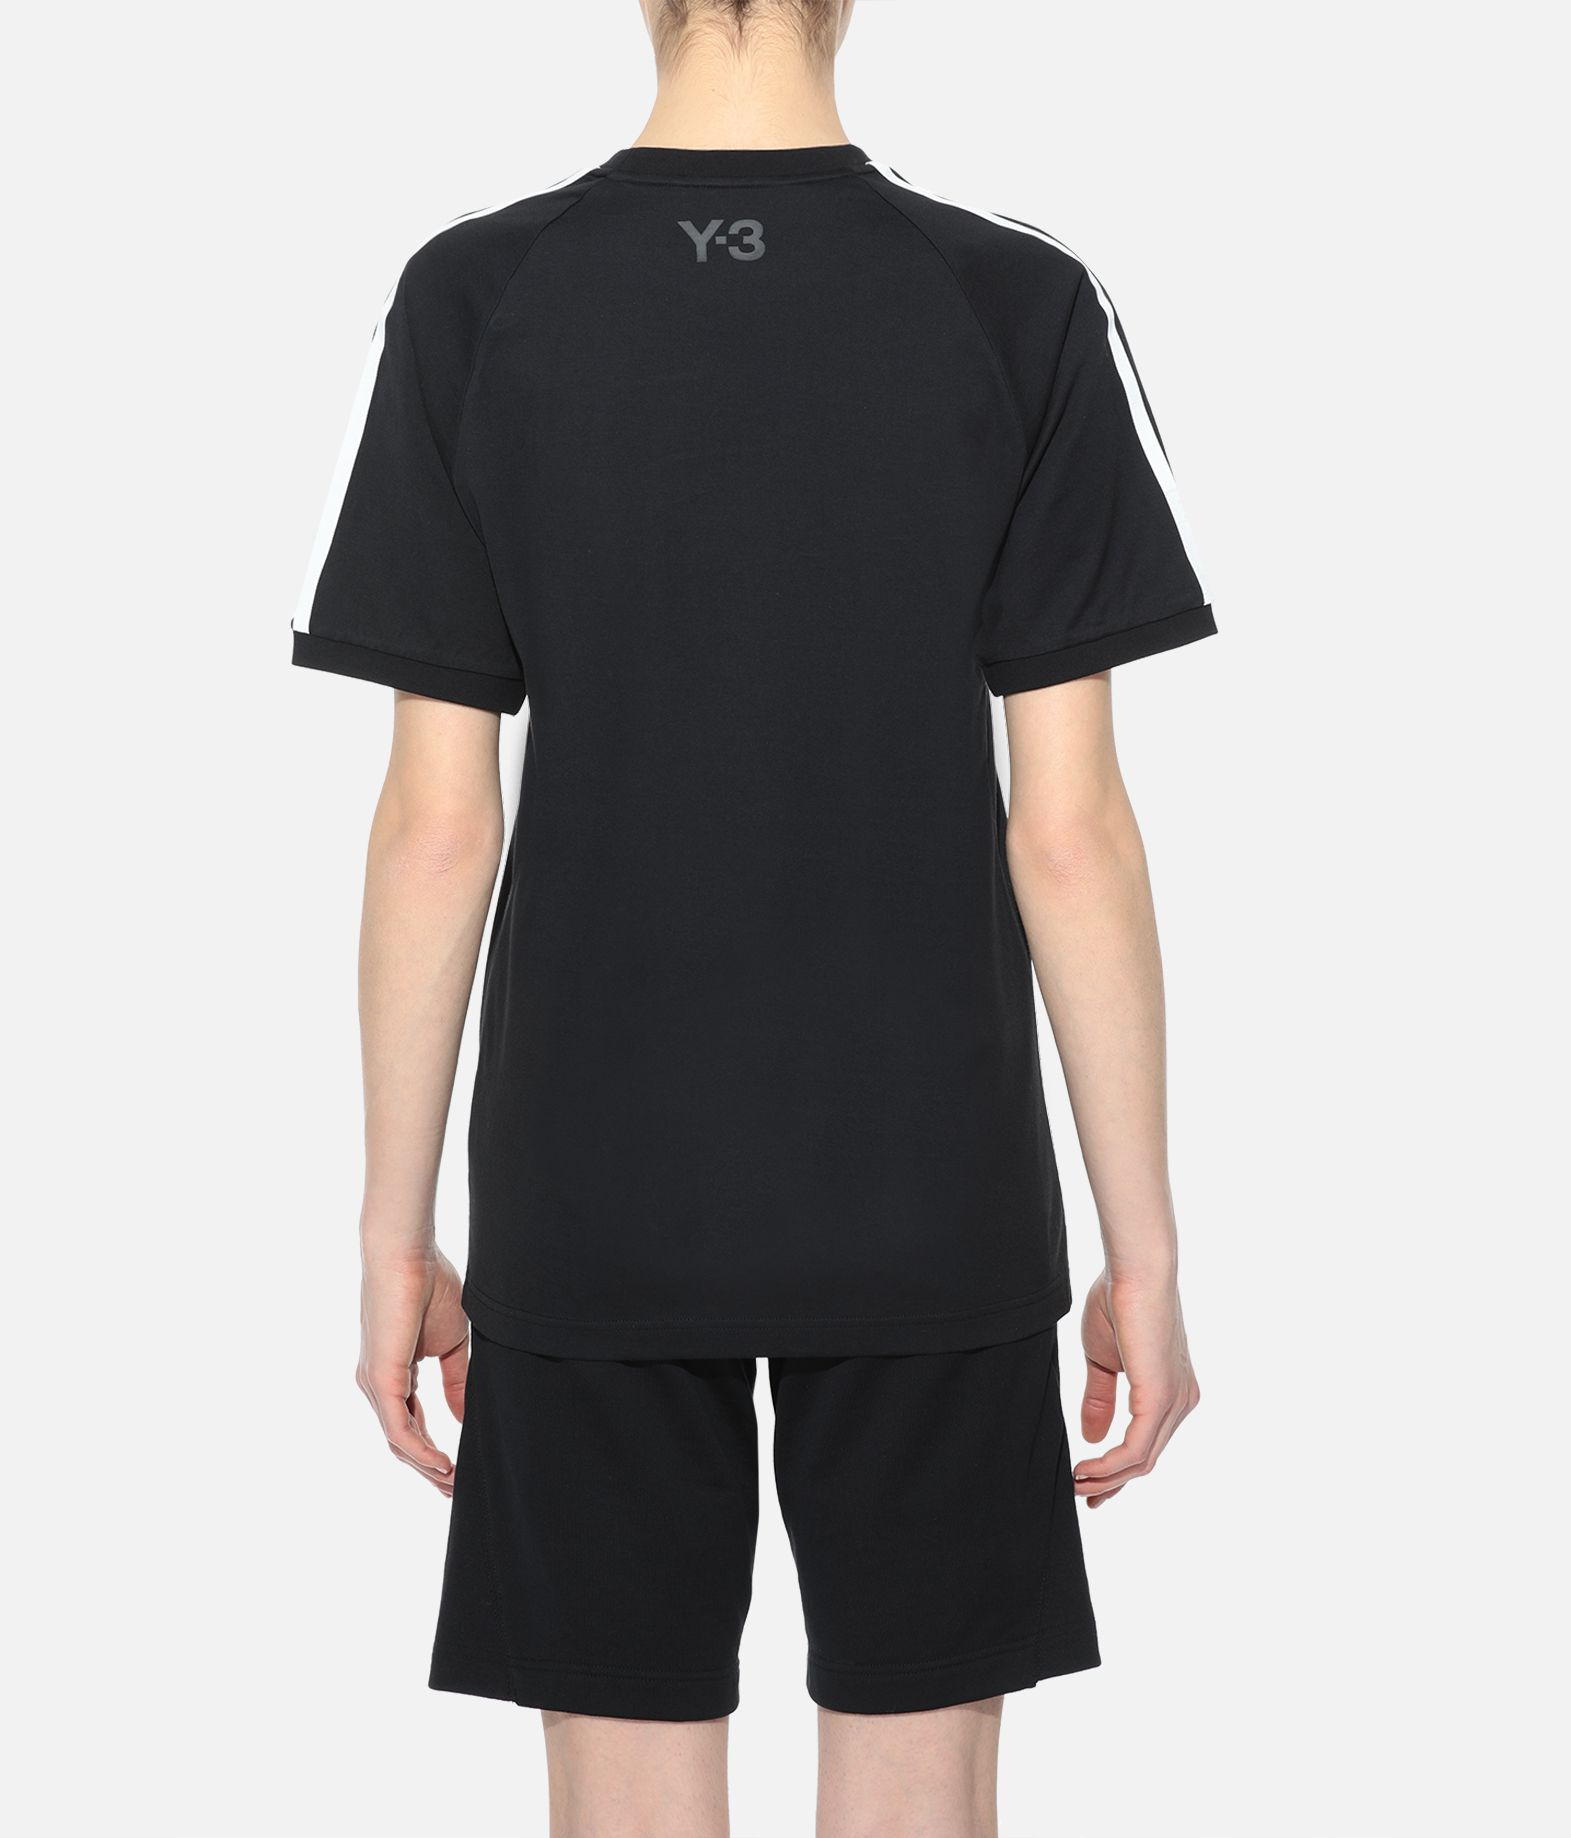 Y-3 Y-3 YOHJI TEE Short sleeve t-shirt Woman d